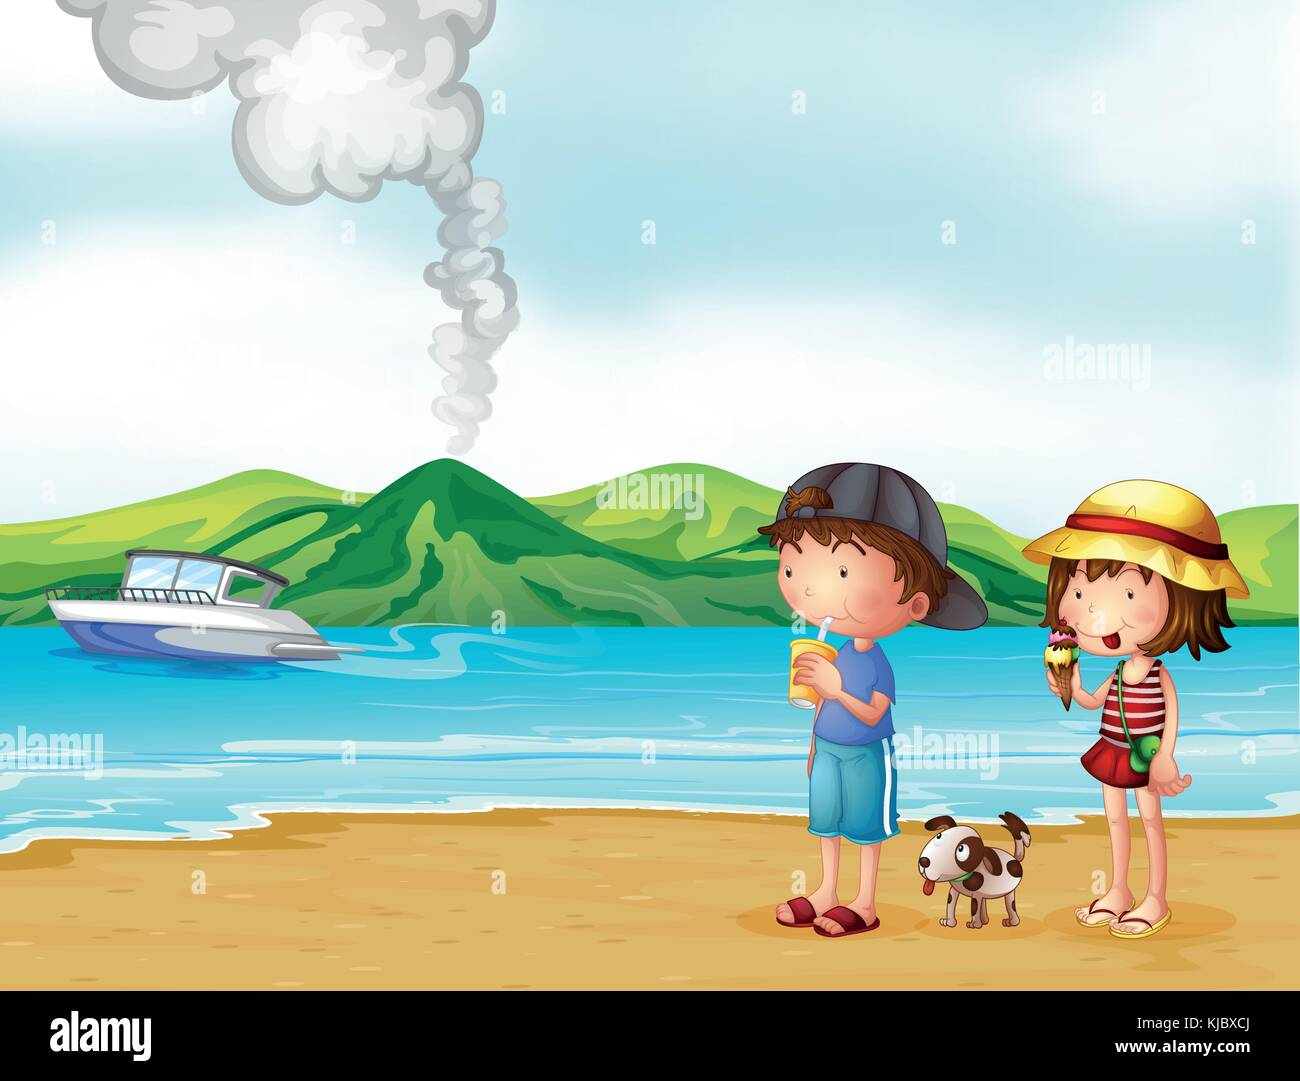 Illustration of a young girl and a young boy strolling at the beach - Stock Vector